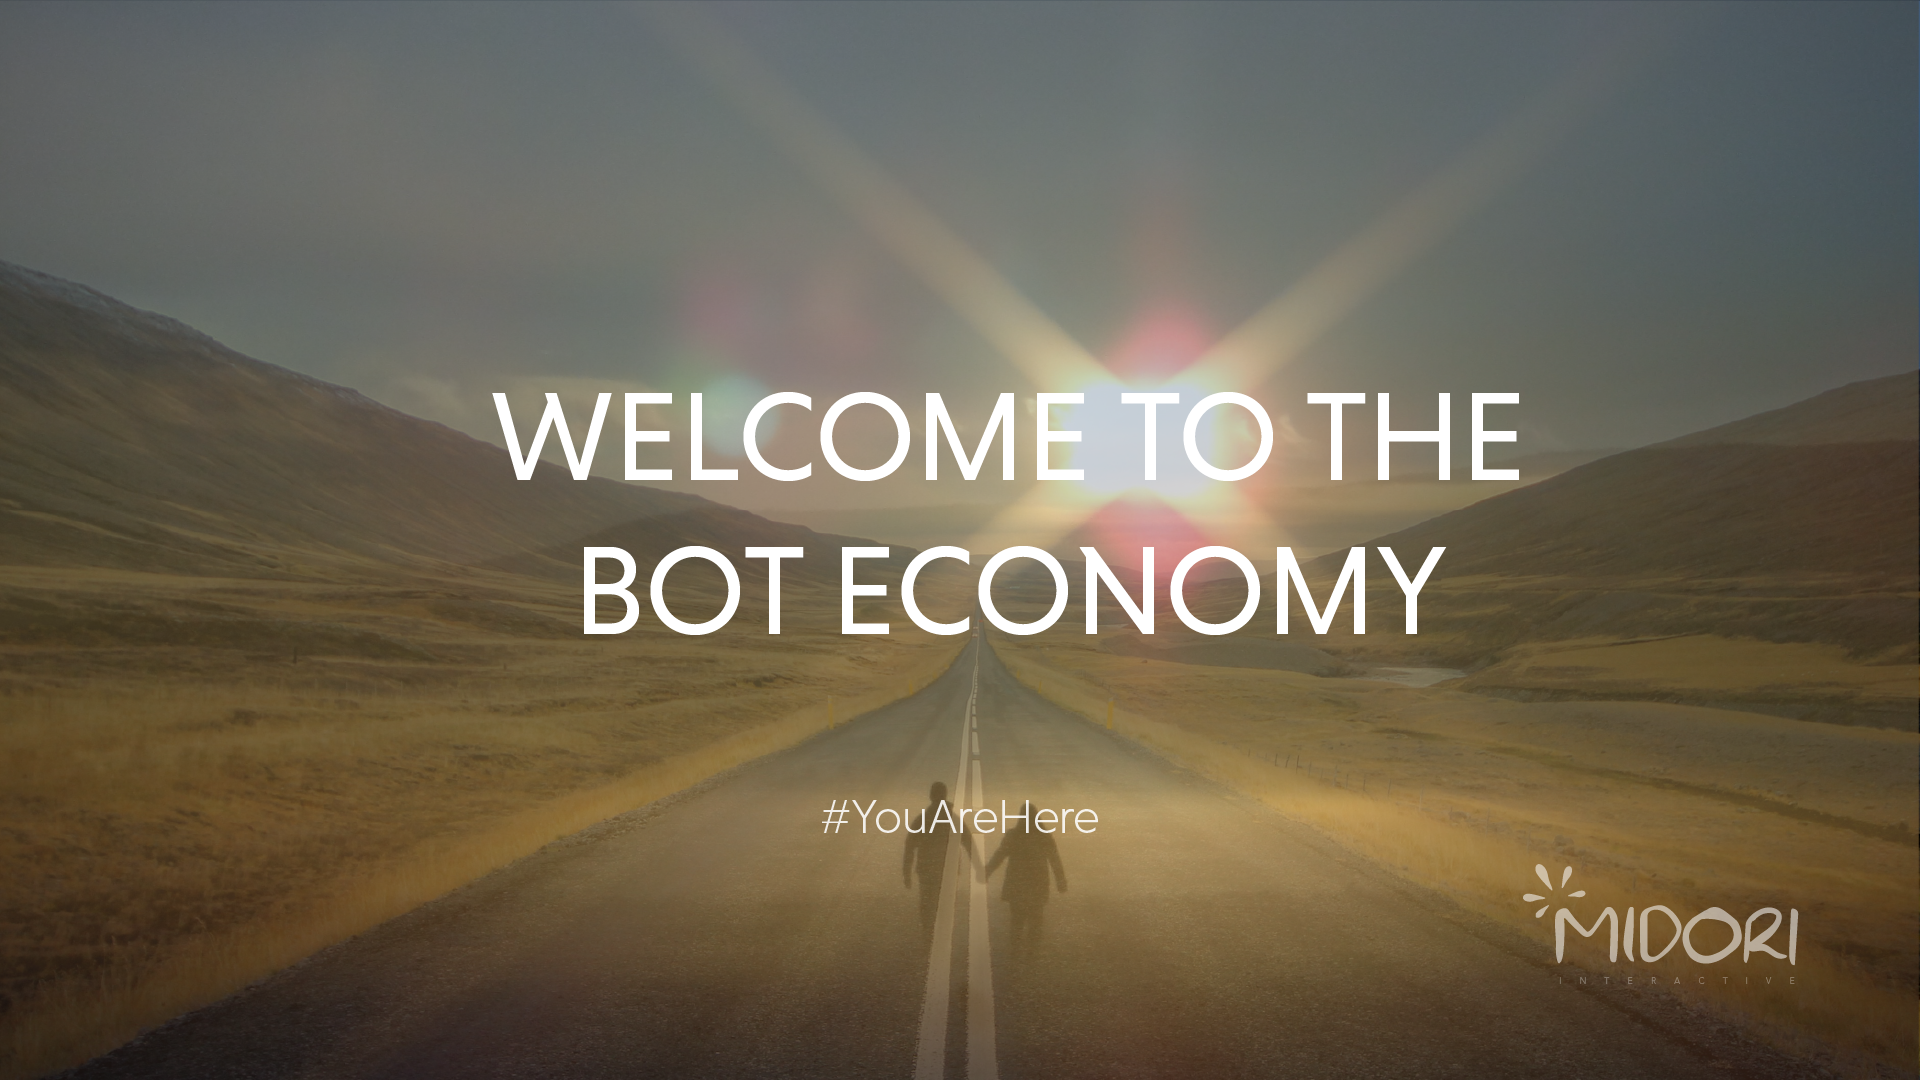 Welcome to the bot economy #YouAreHere